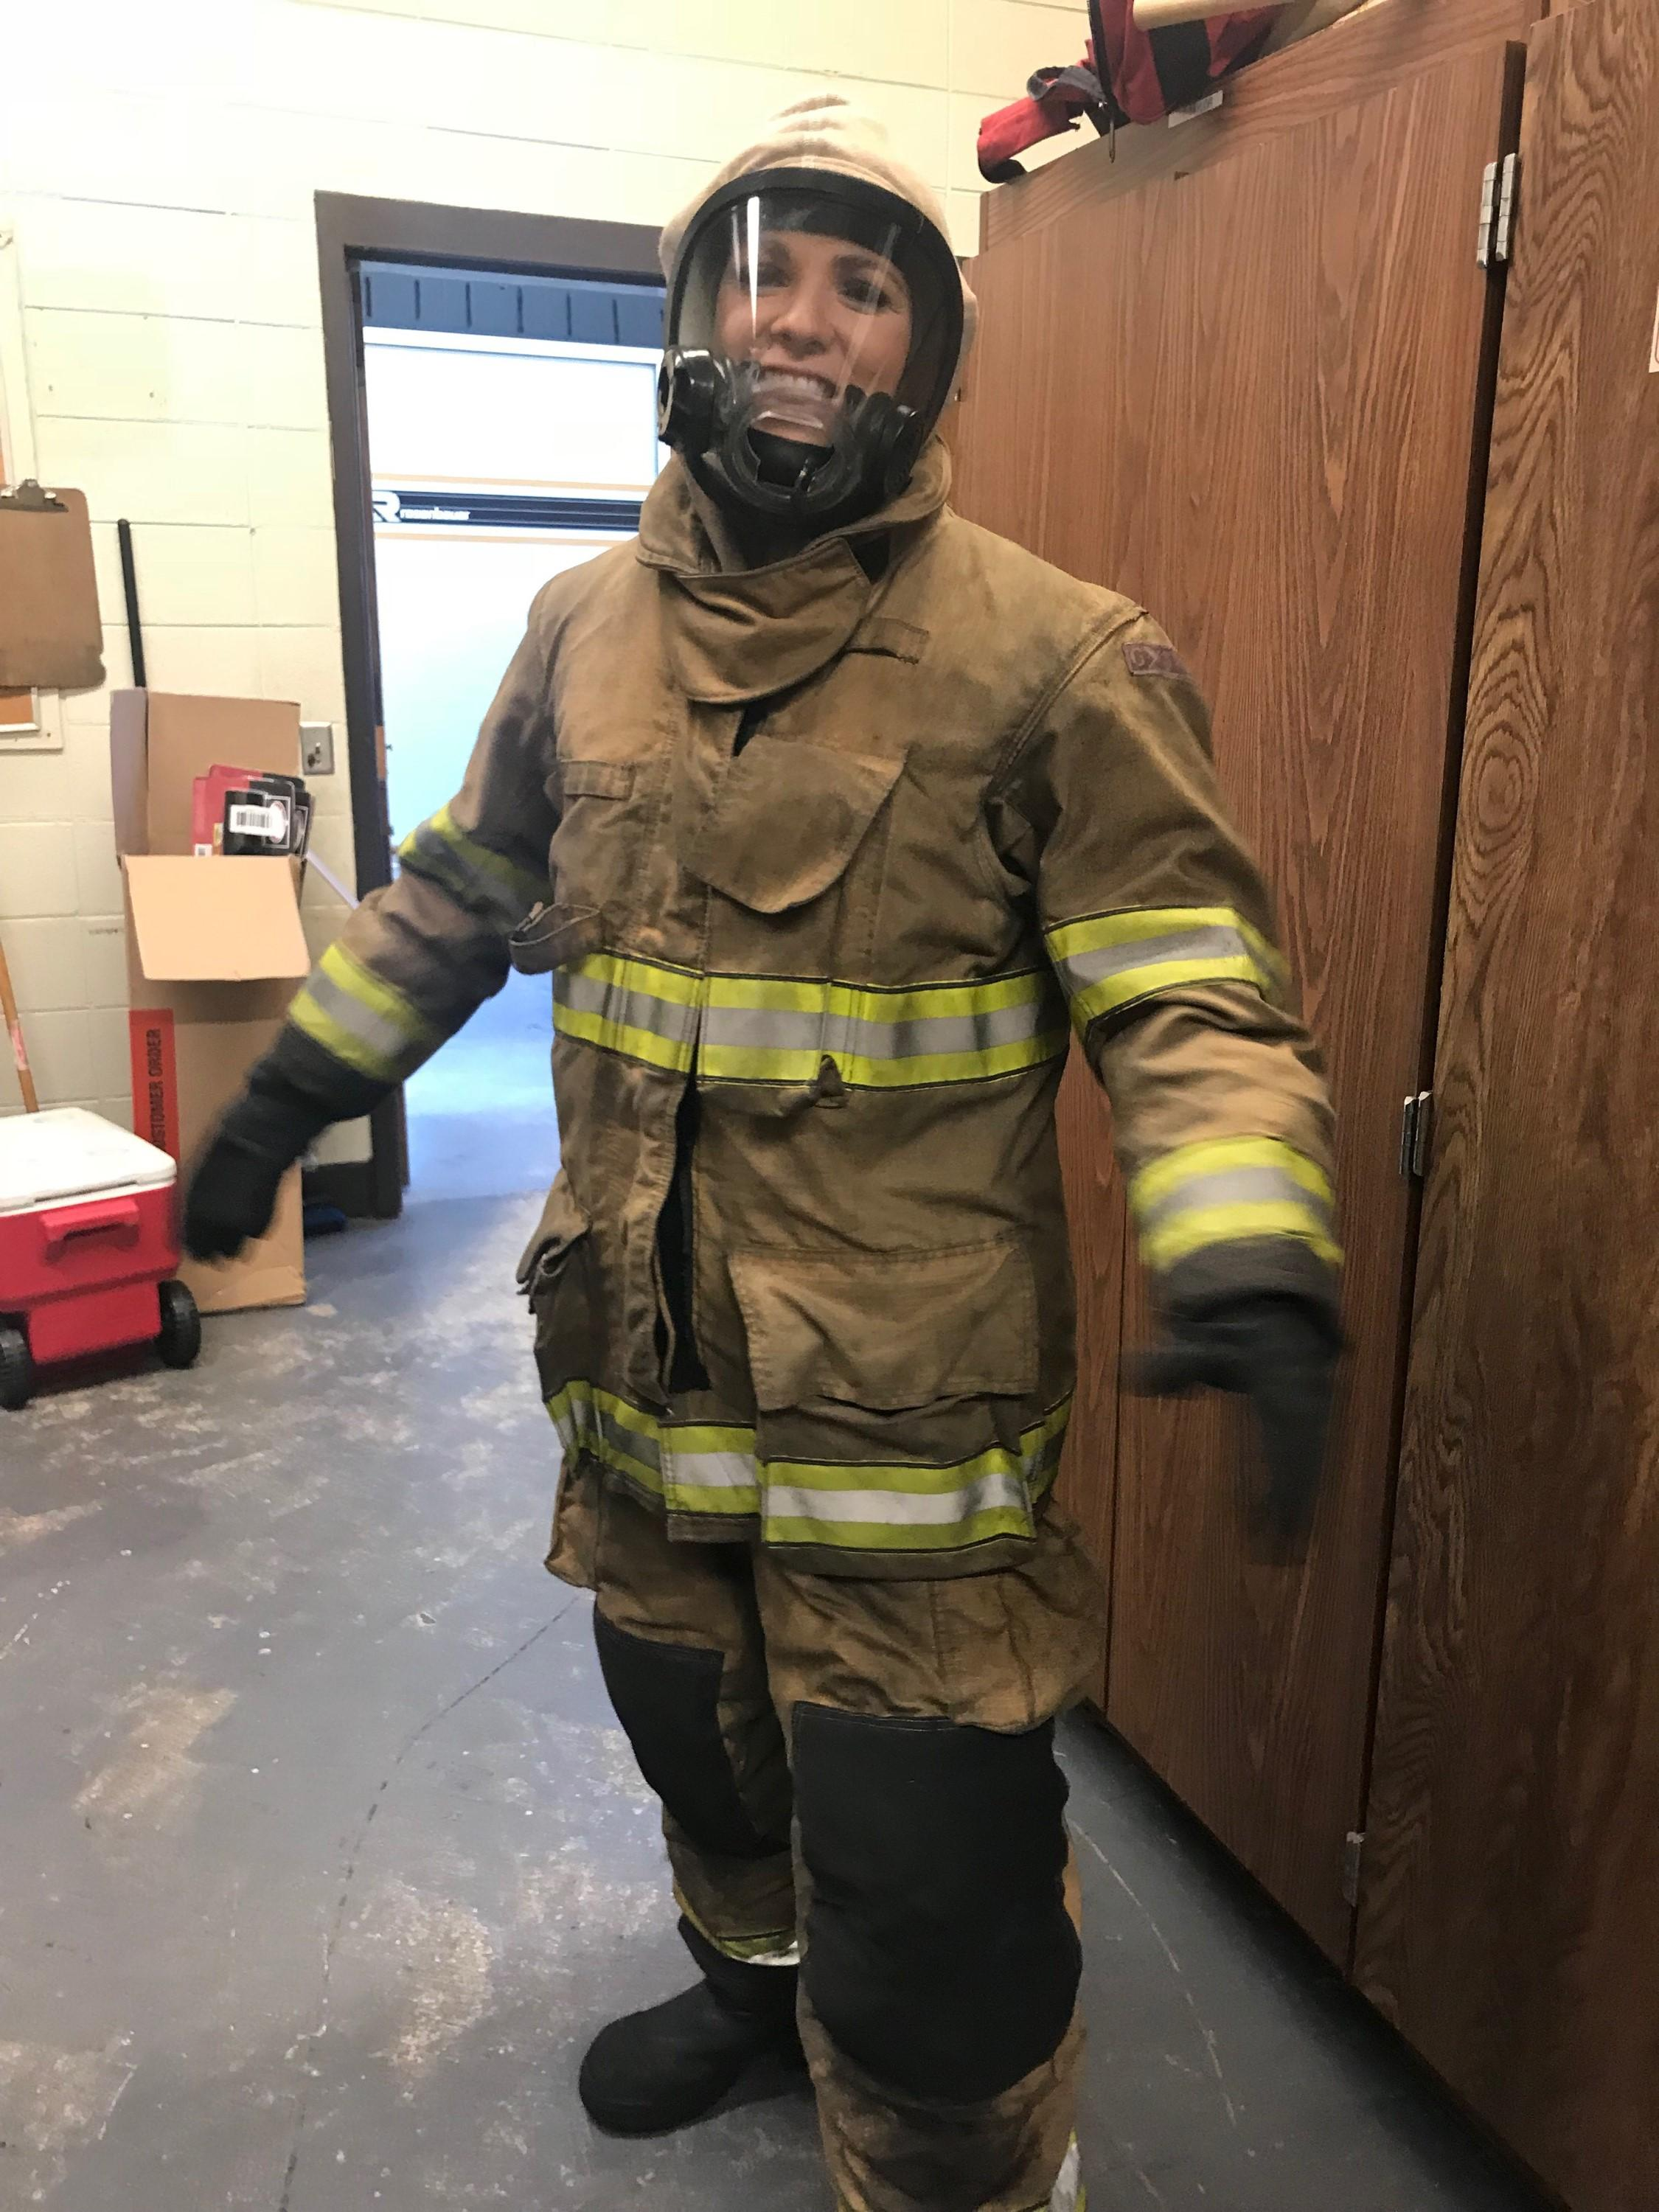 WGXA got an inside look Friday at firefighter training at the Georgia Public Safety Training Center in Forsyth/Claudia Coco (WGXA)